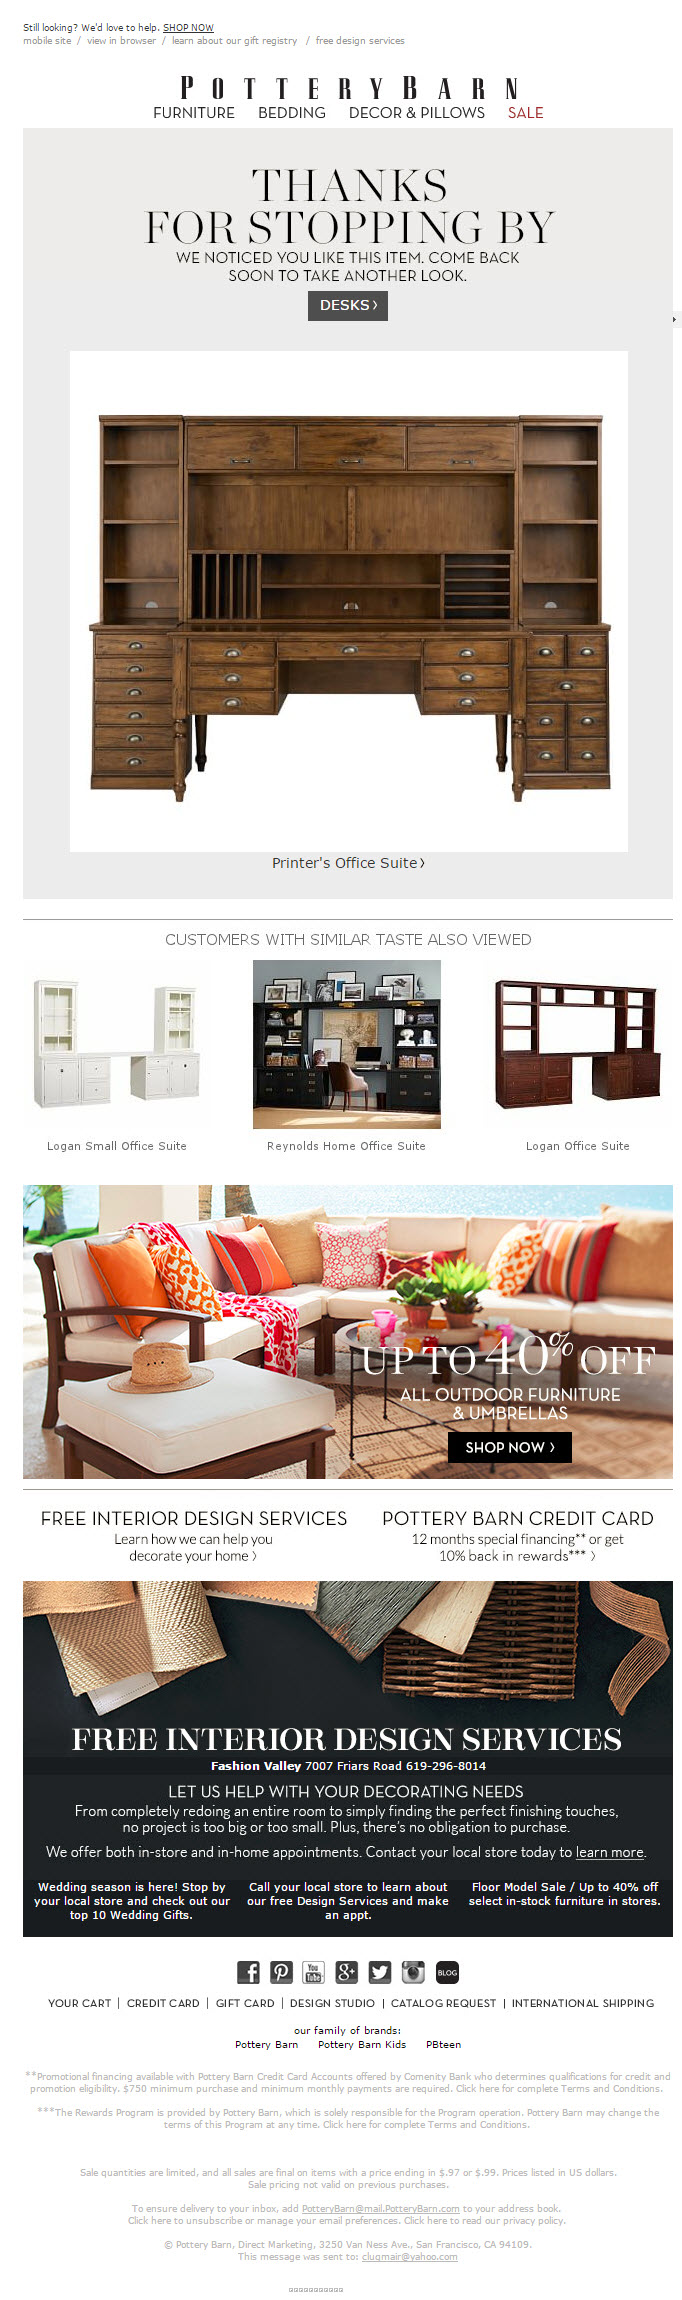 Browse abandon for pottery barn Email marketing